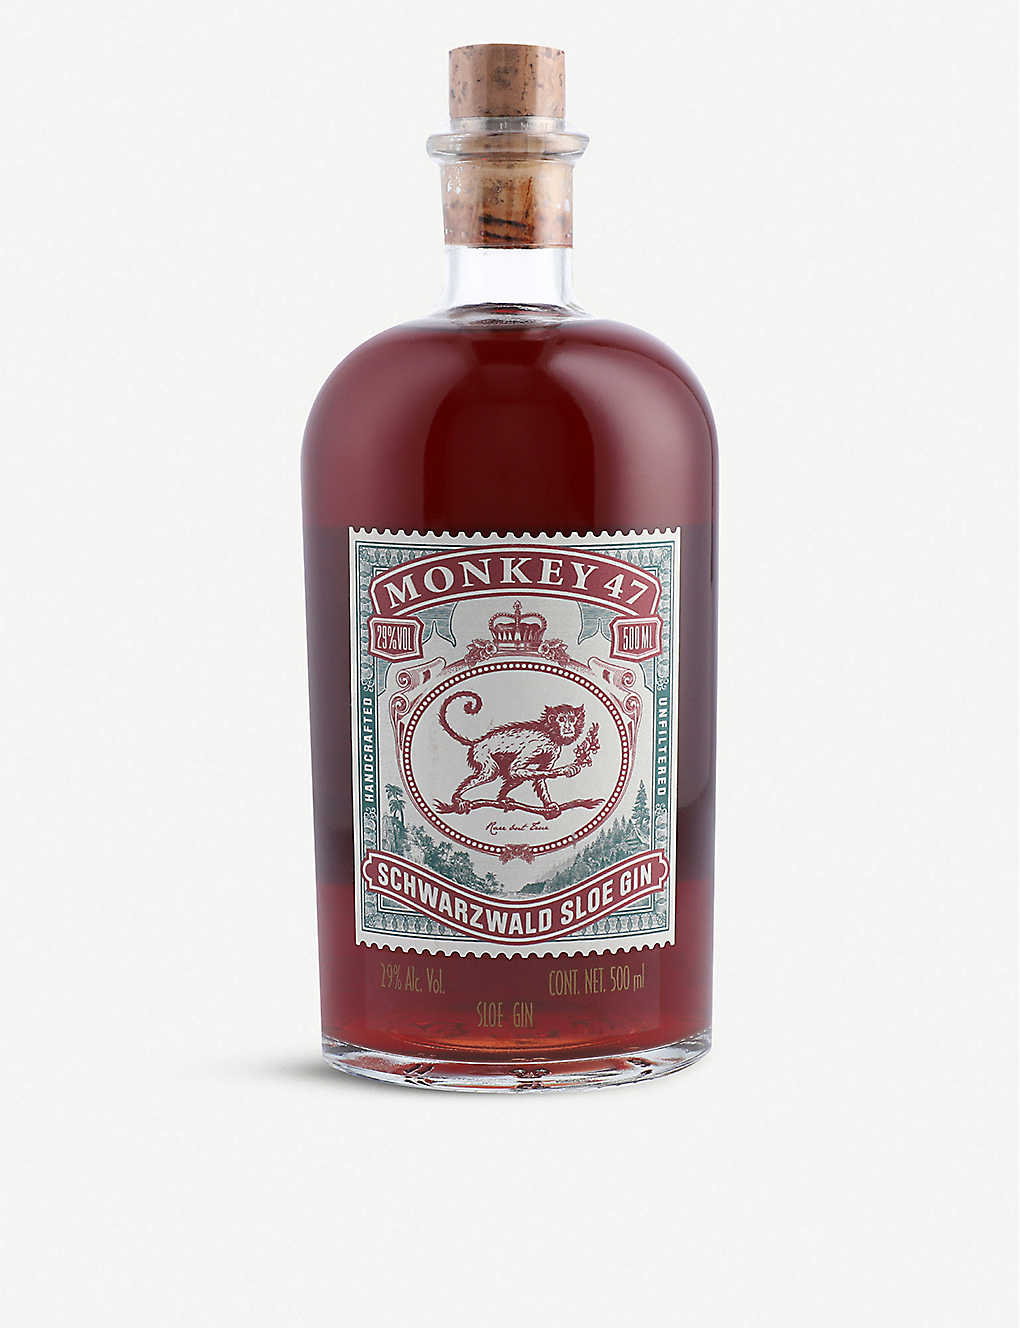 MONKEY 47: Monkey 47 sloe gin 500ml